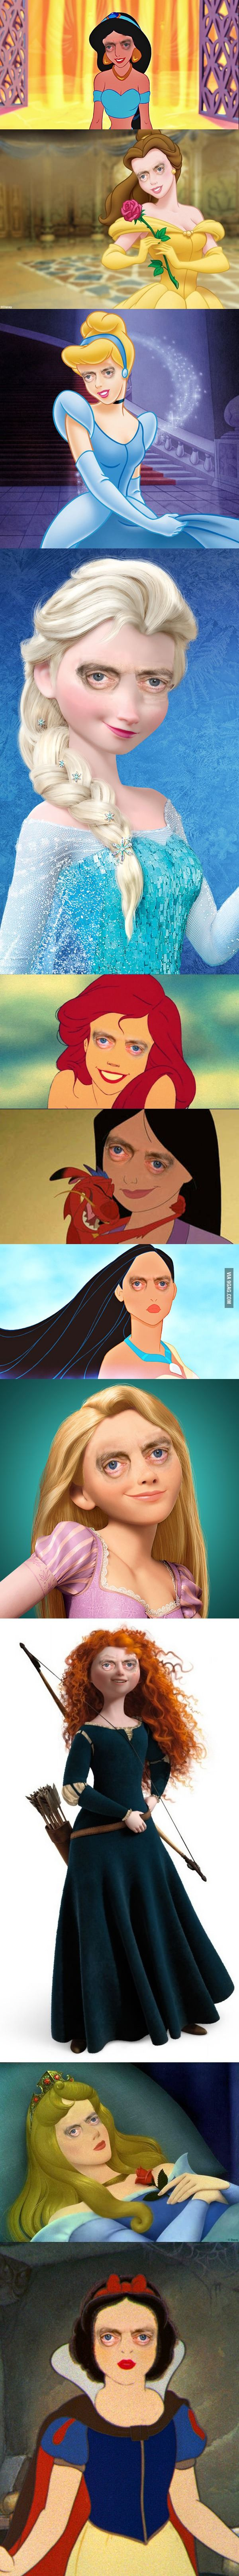 Disney princesses with Steve Buscemi's eyes.  What a difference the eyes make. Can't stop laughing. Hehehehehe.